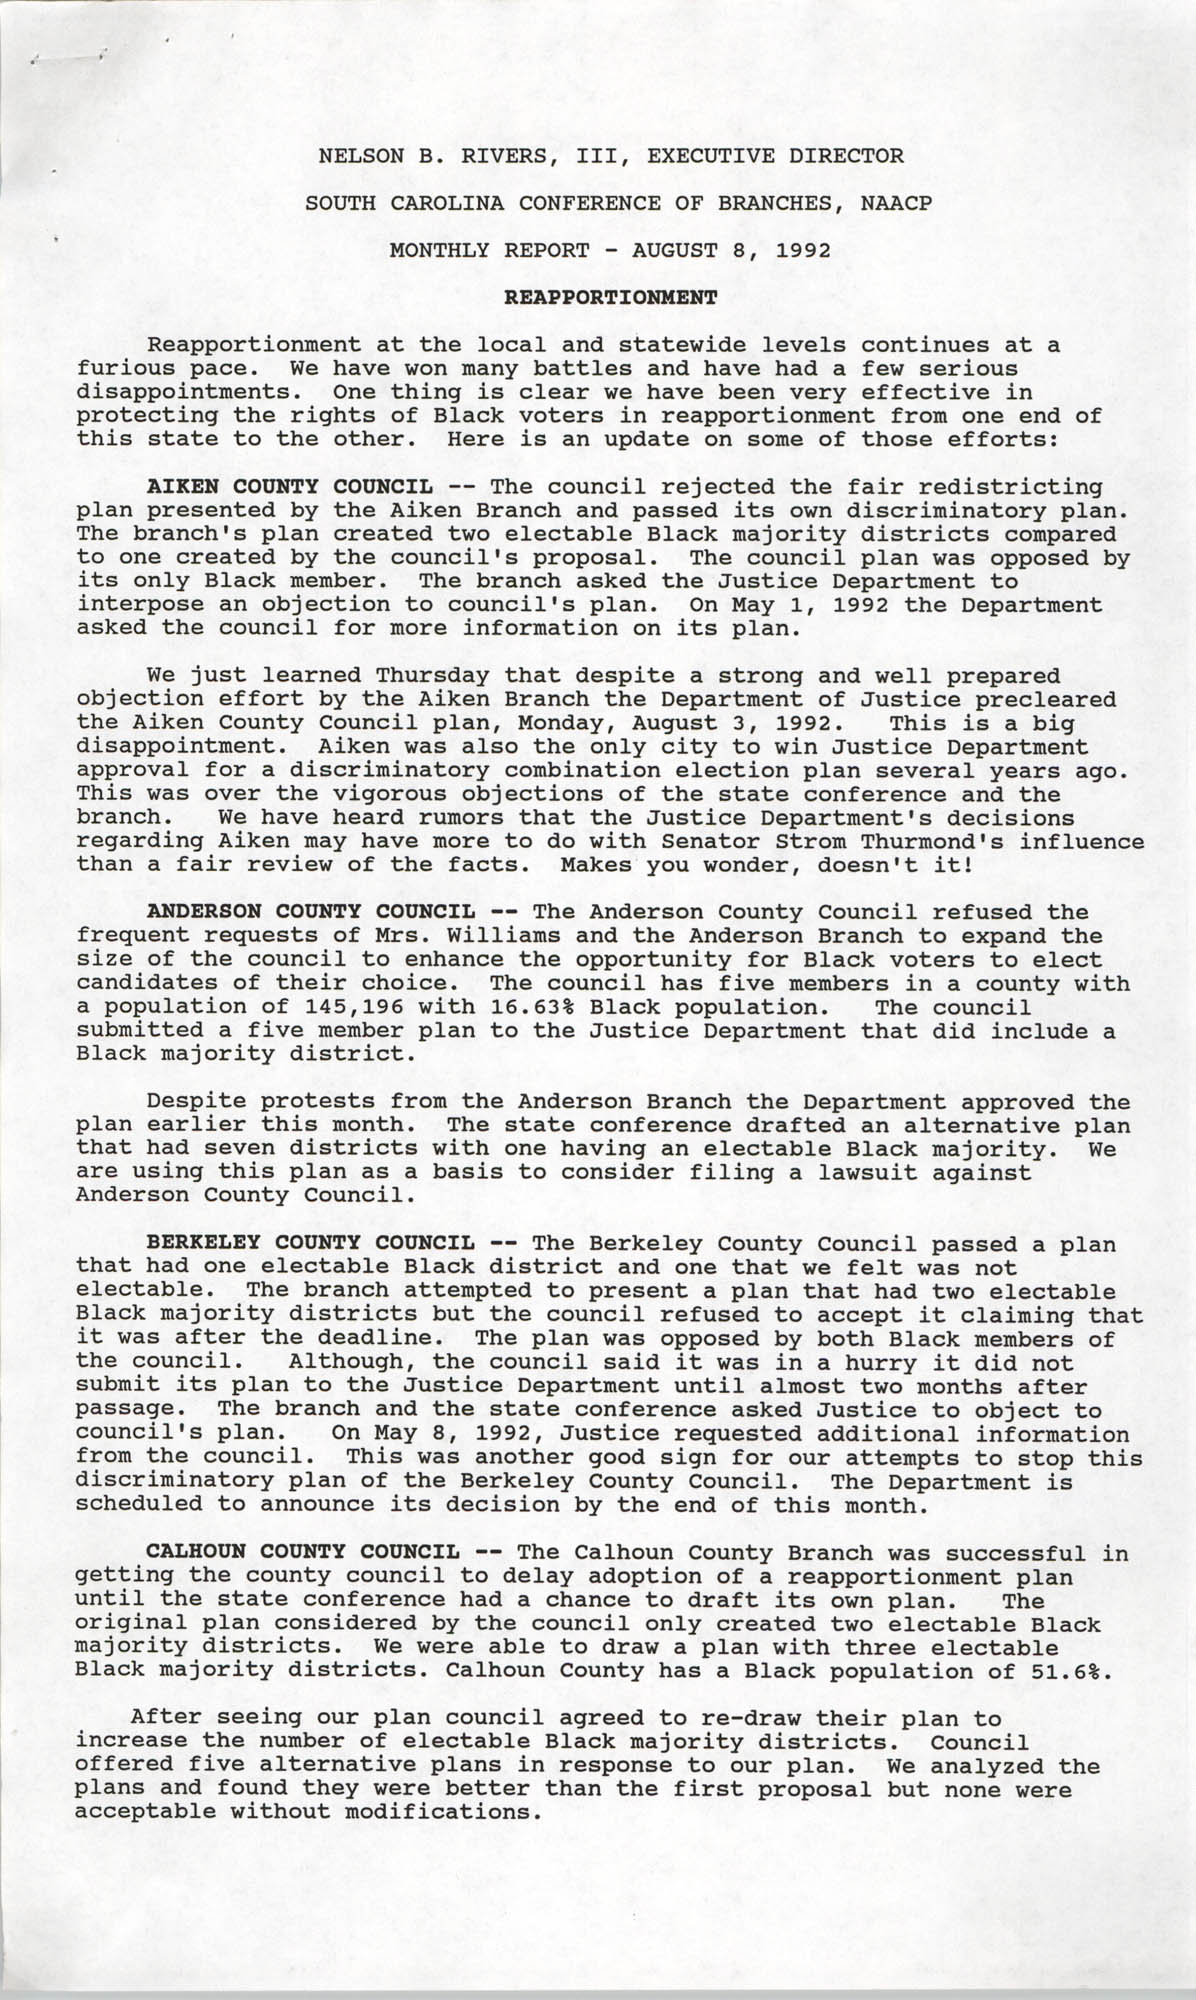 South Carolina Conference of Branches, NAACP Monthly Report, August 8, 1992